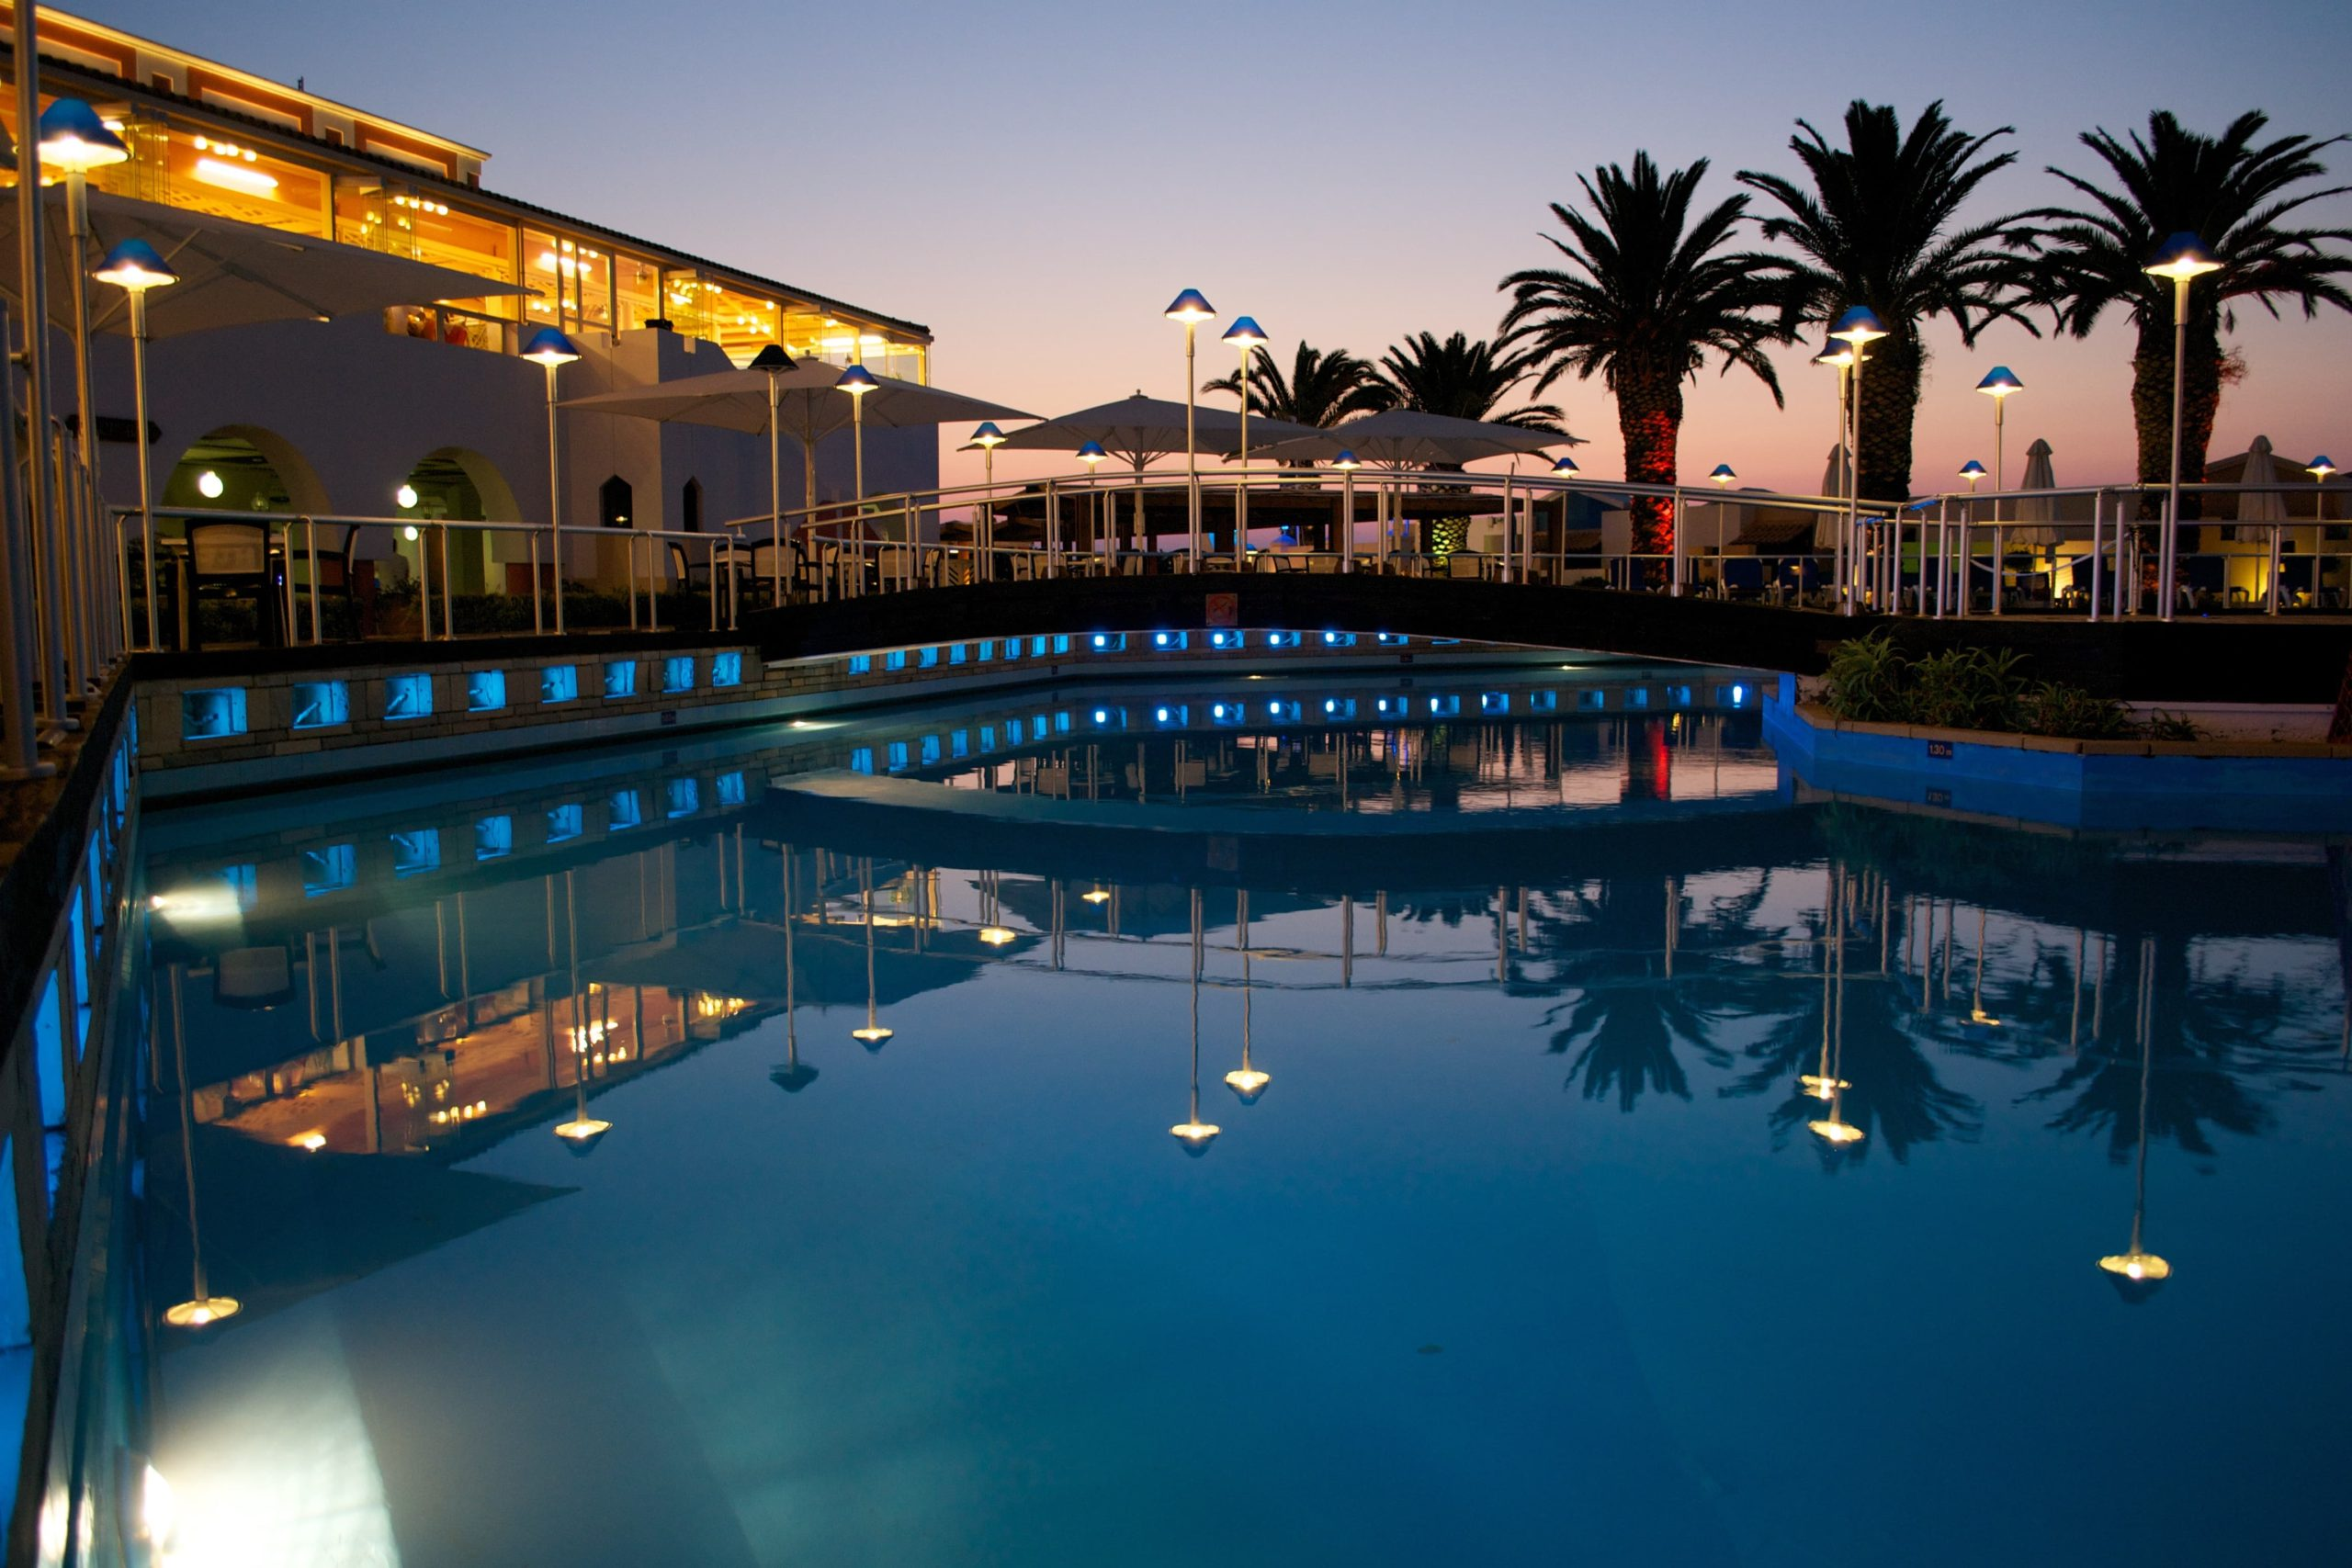 Energy Efficient Swimming Pool Equipment Helps You Save Money